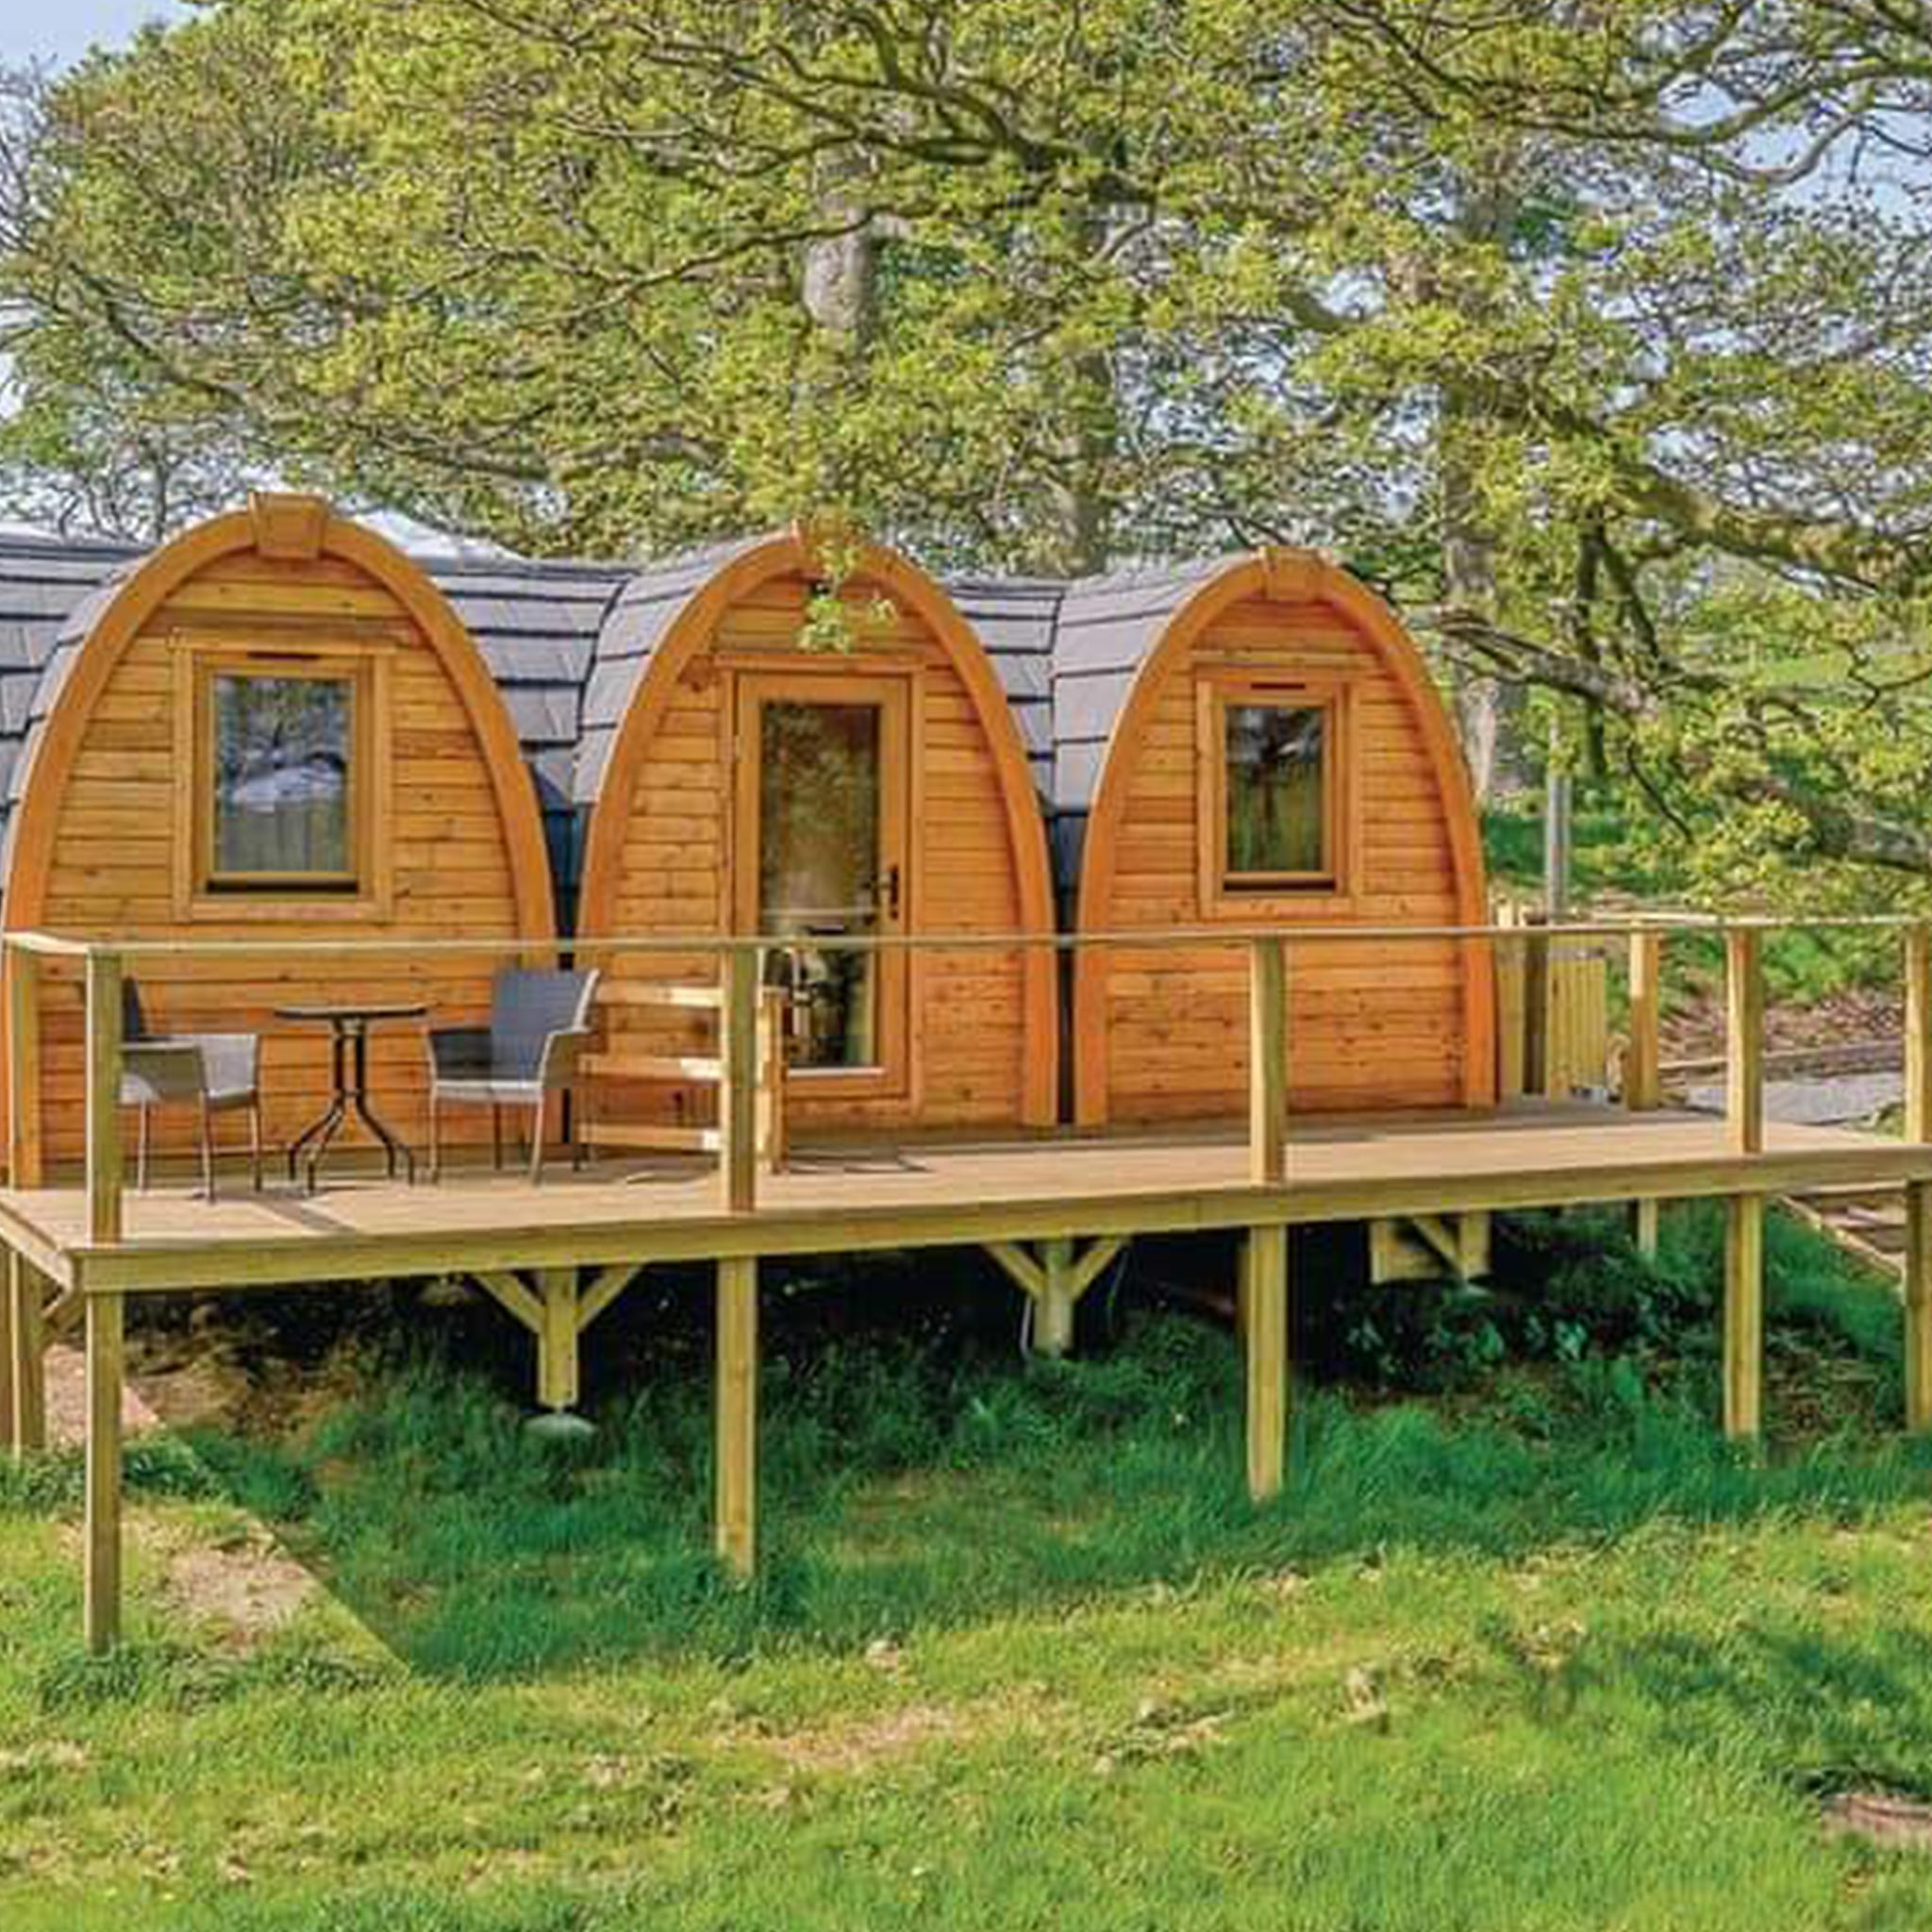 Wooden Camping Cabins